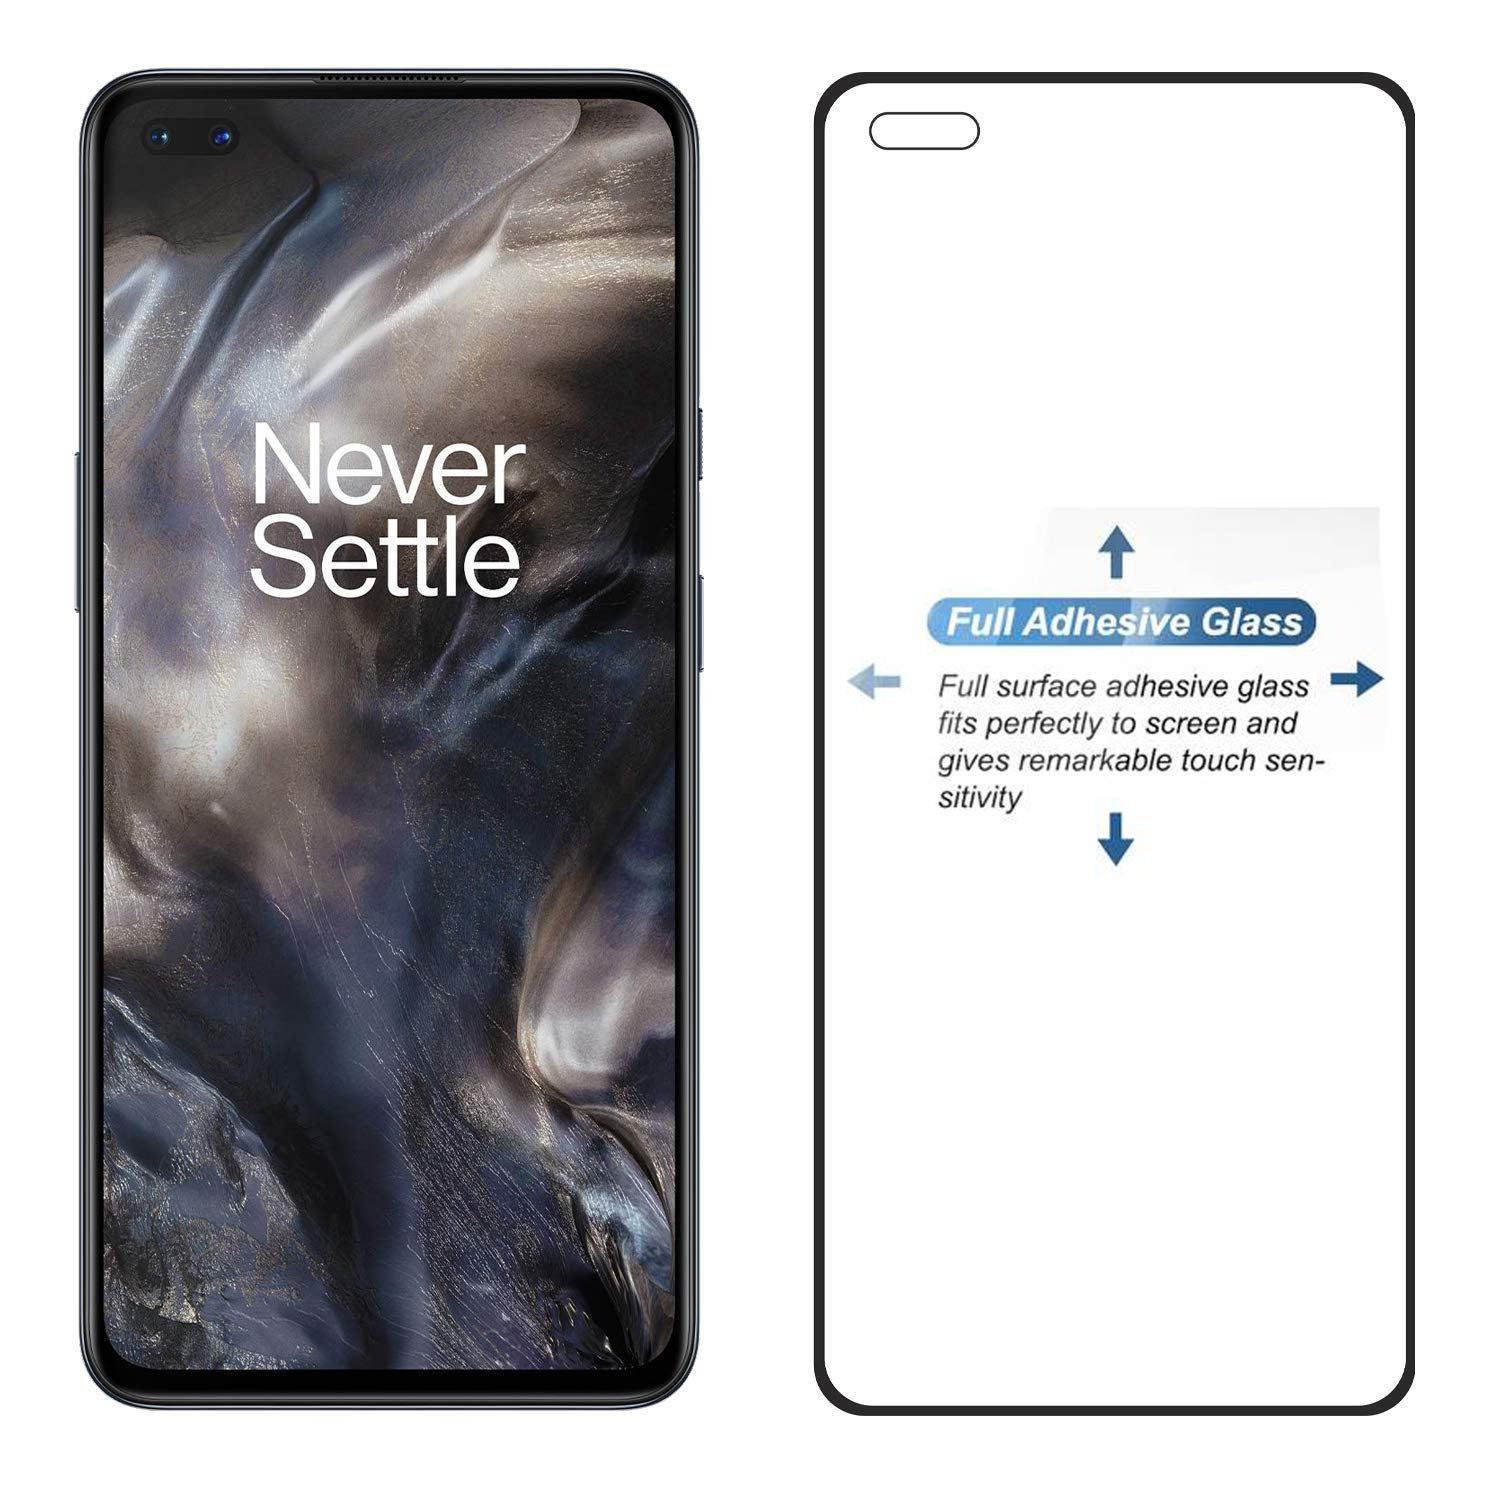 Oneplus Nord 9H glass